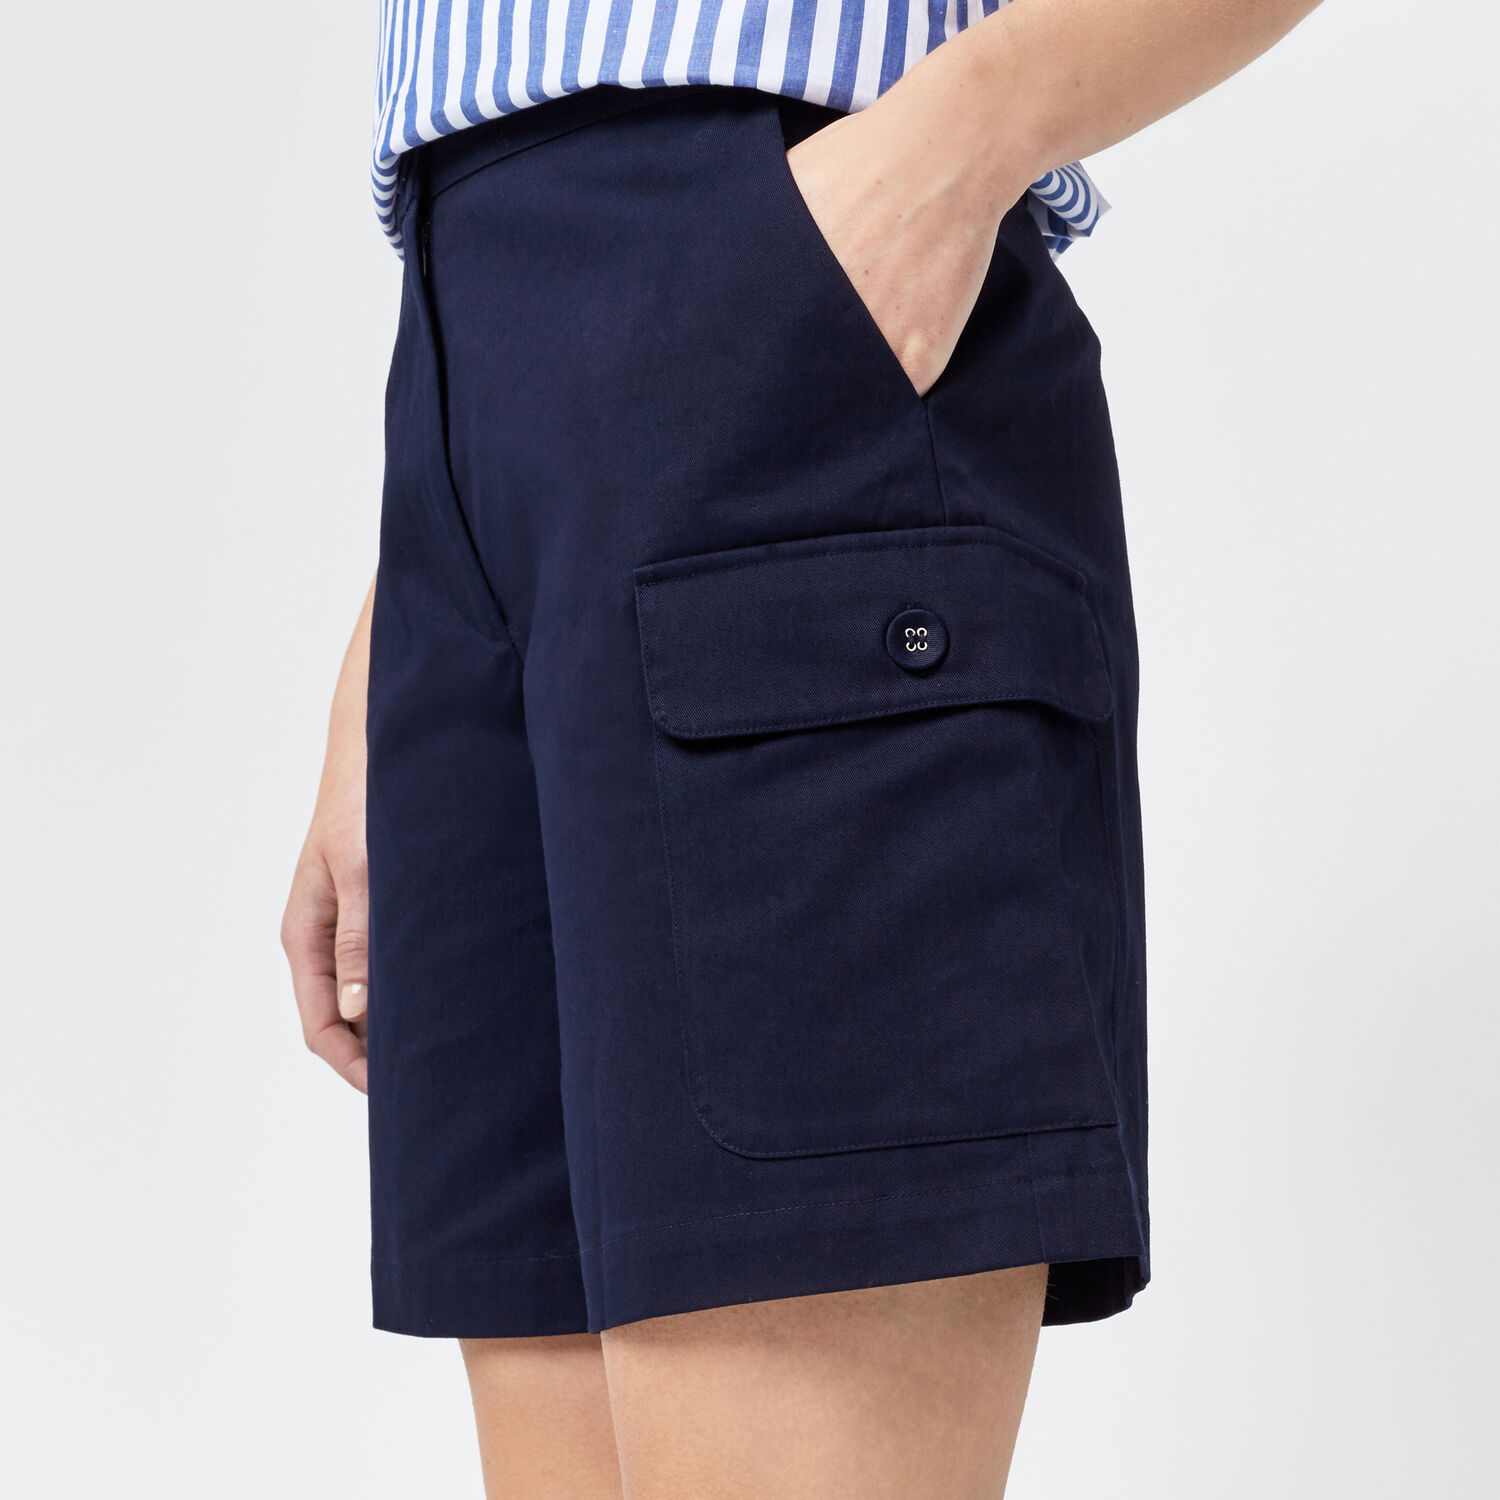 Warehouse, KNEE LENGTH SHORTS Navy 1